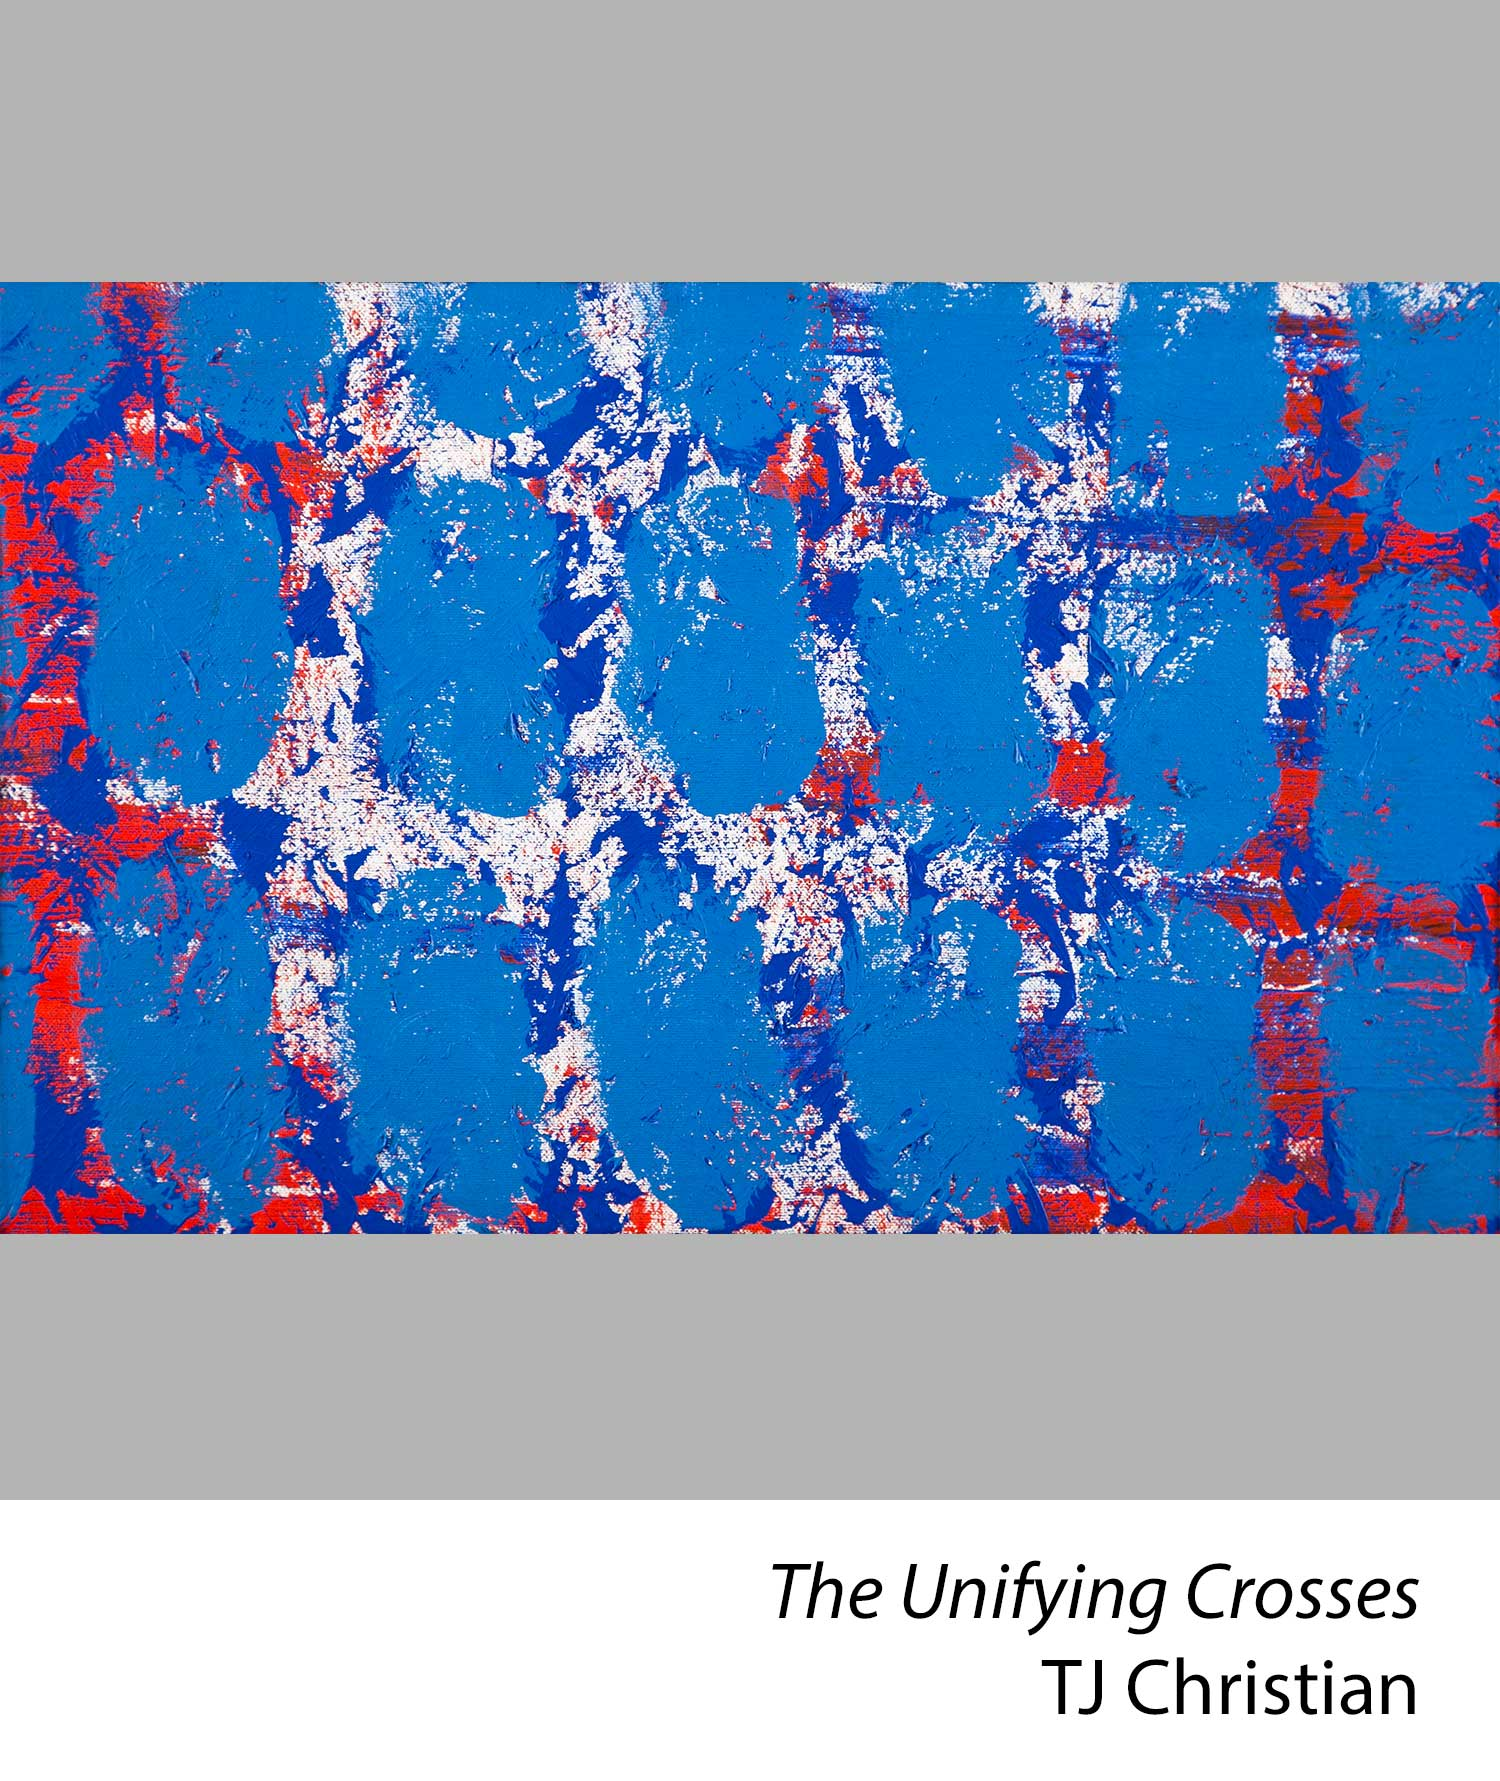 The Unifying Crosses by TJ Christian